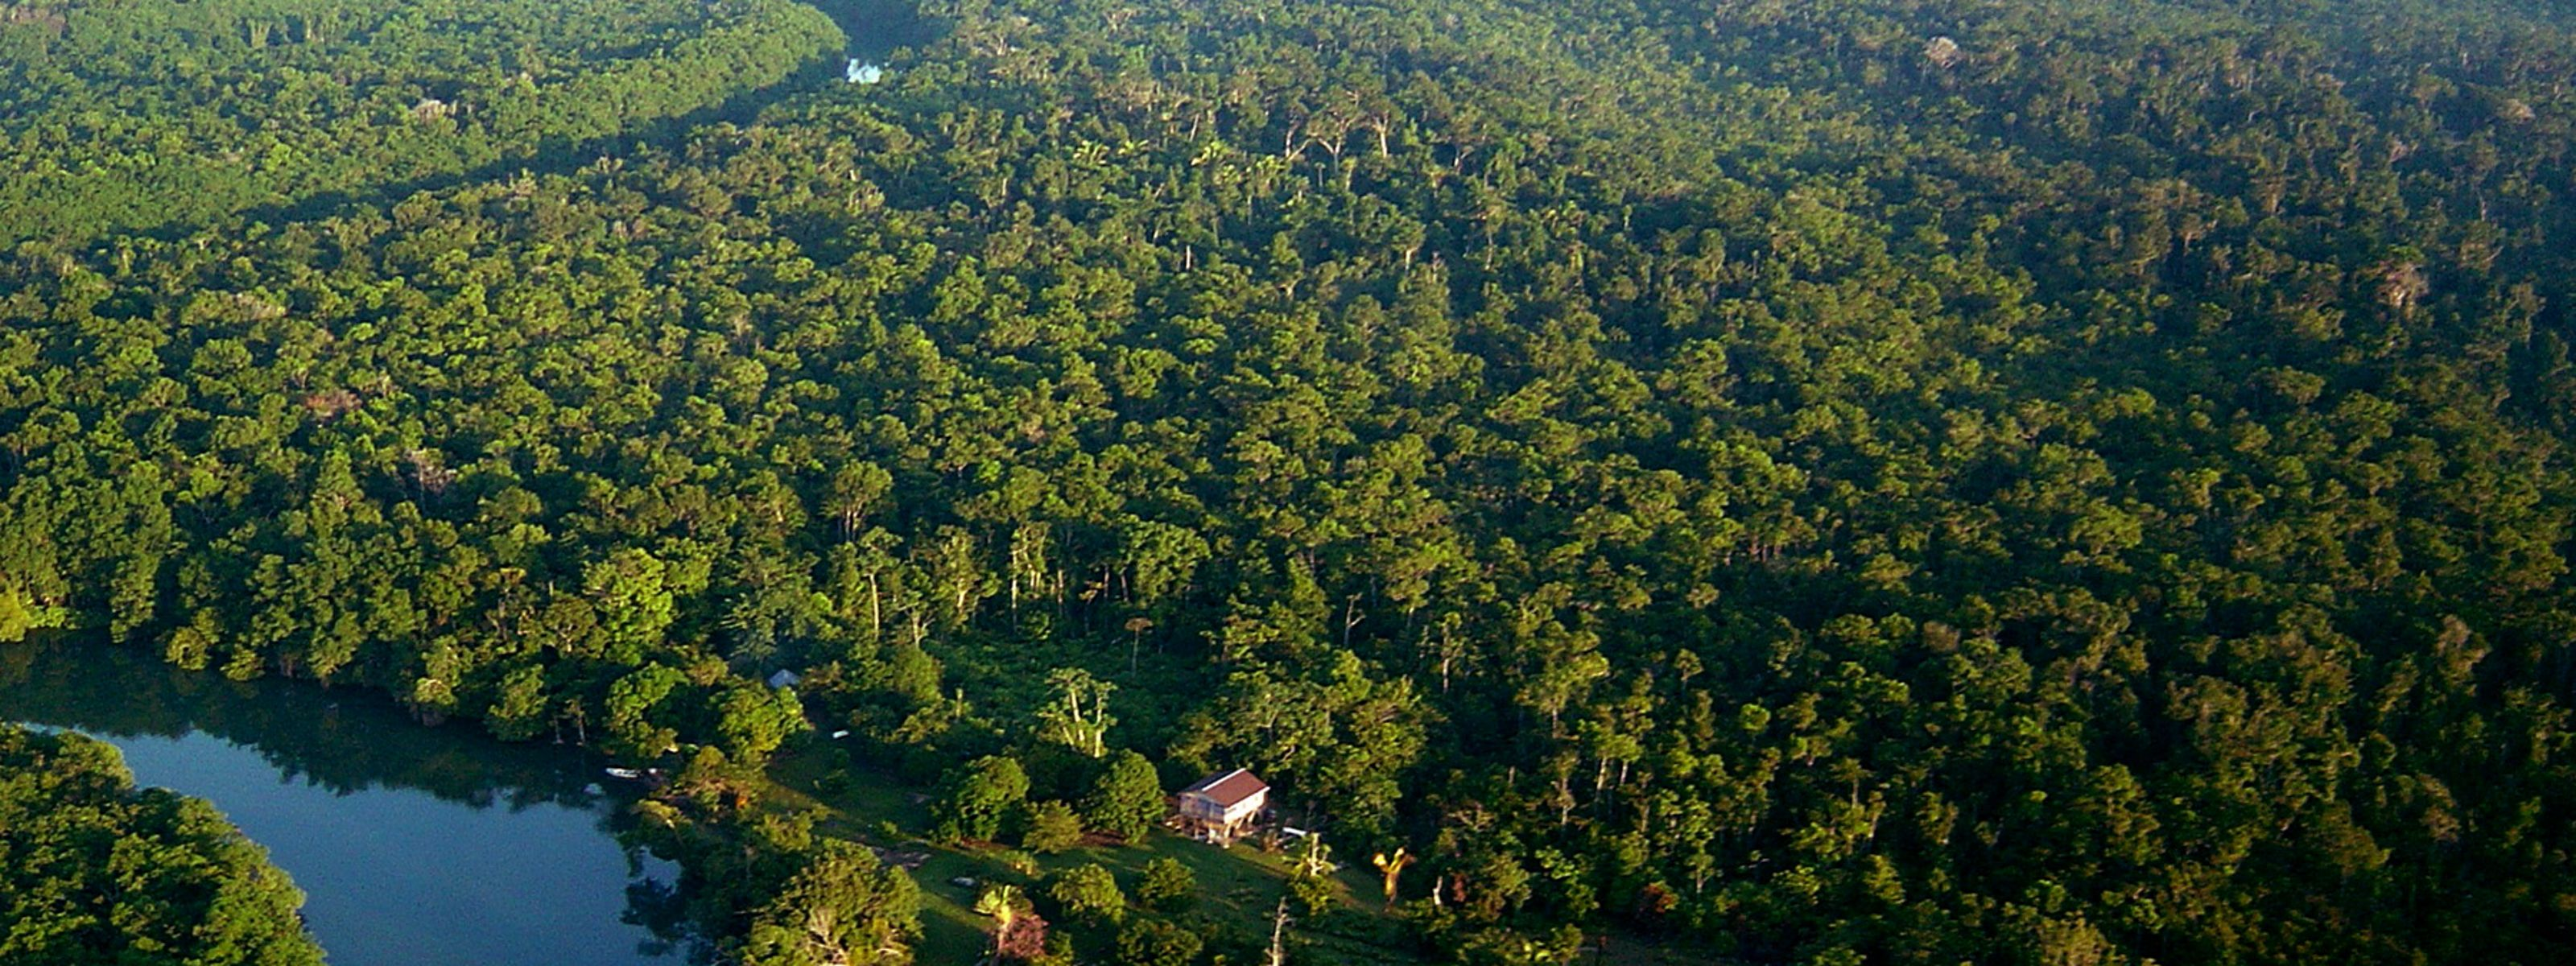 Aerial view of a tropical rainforest